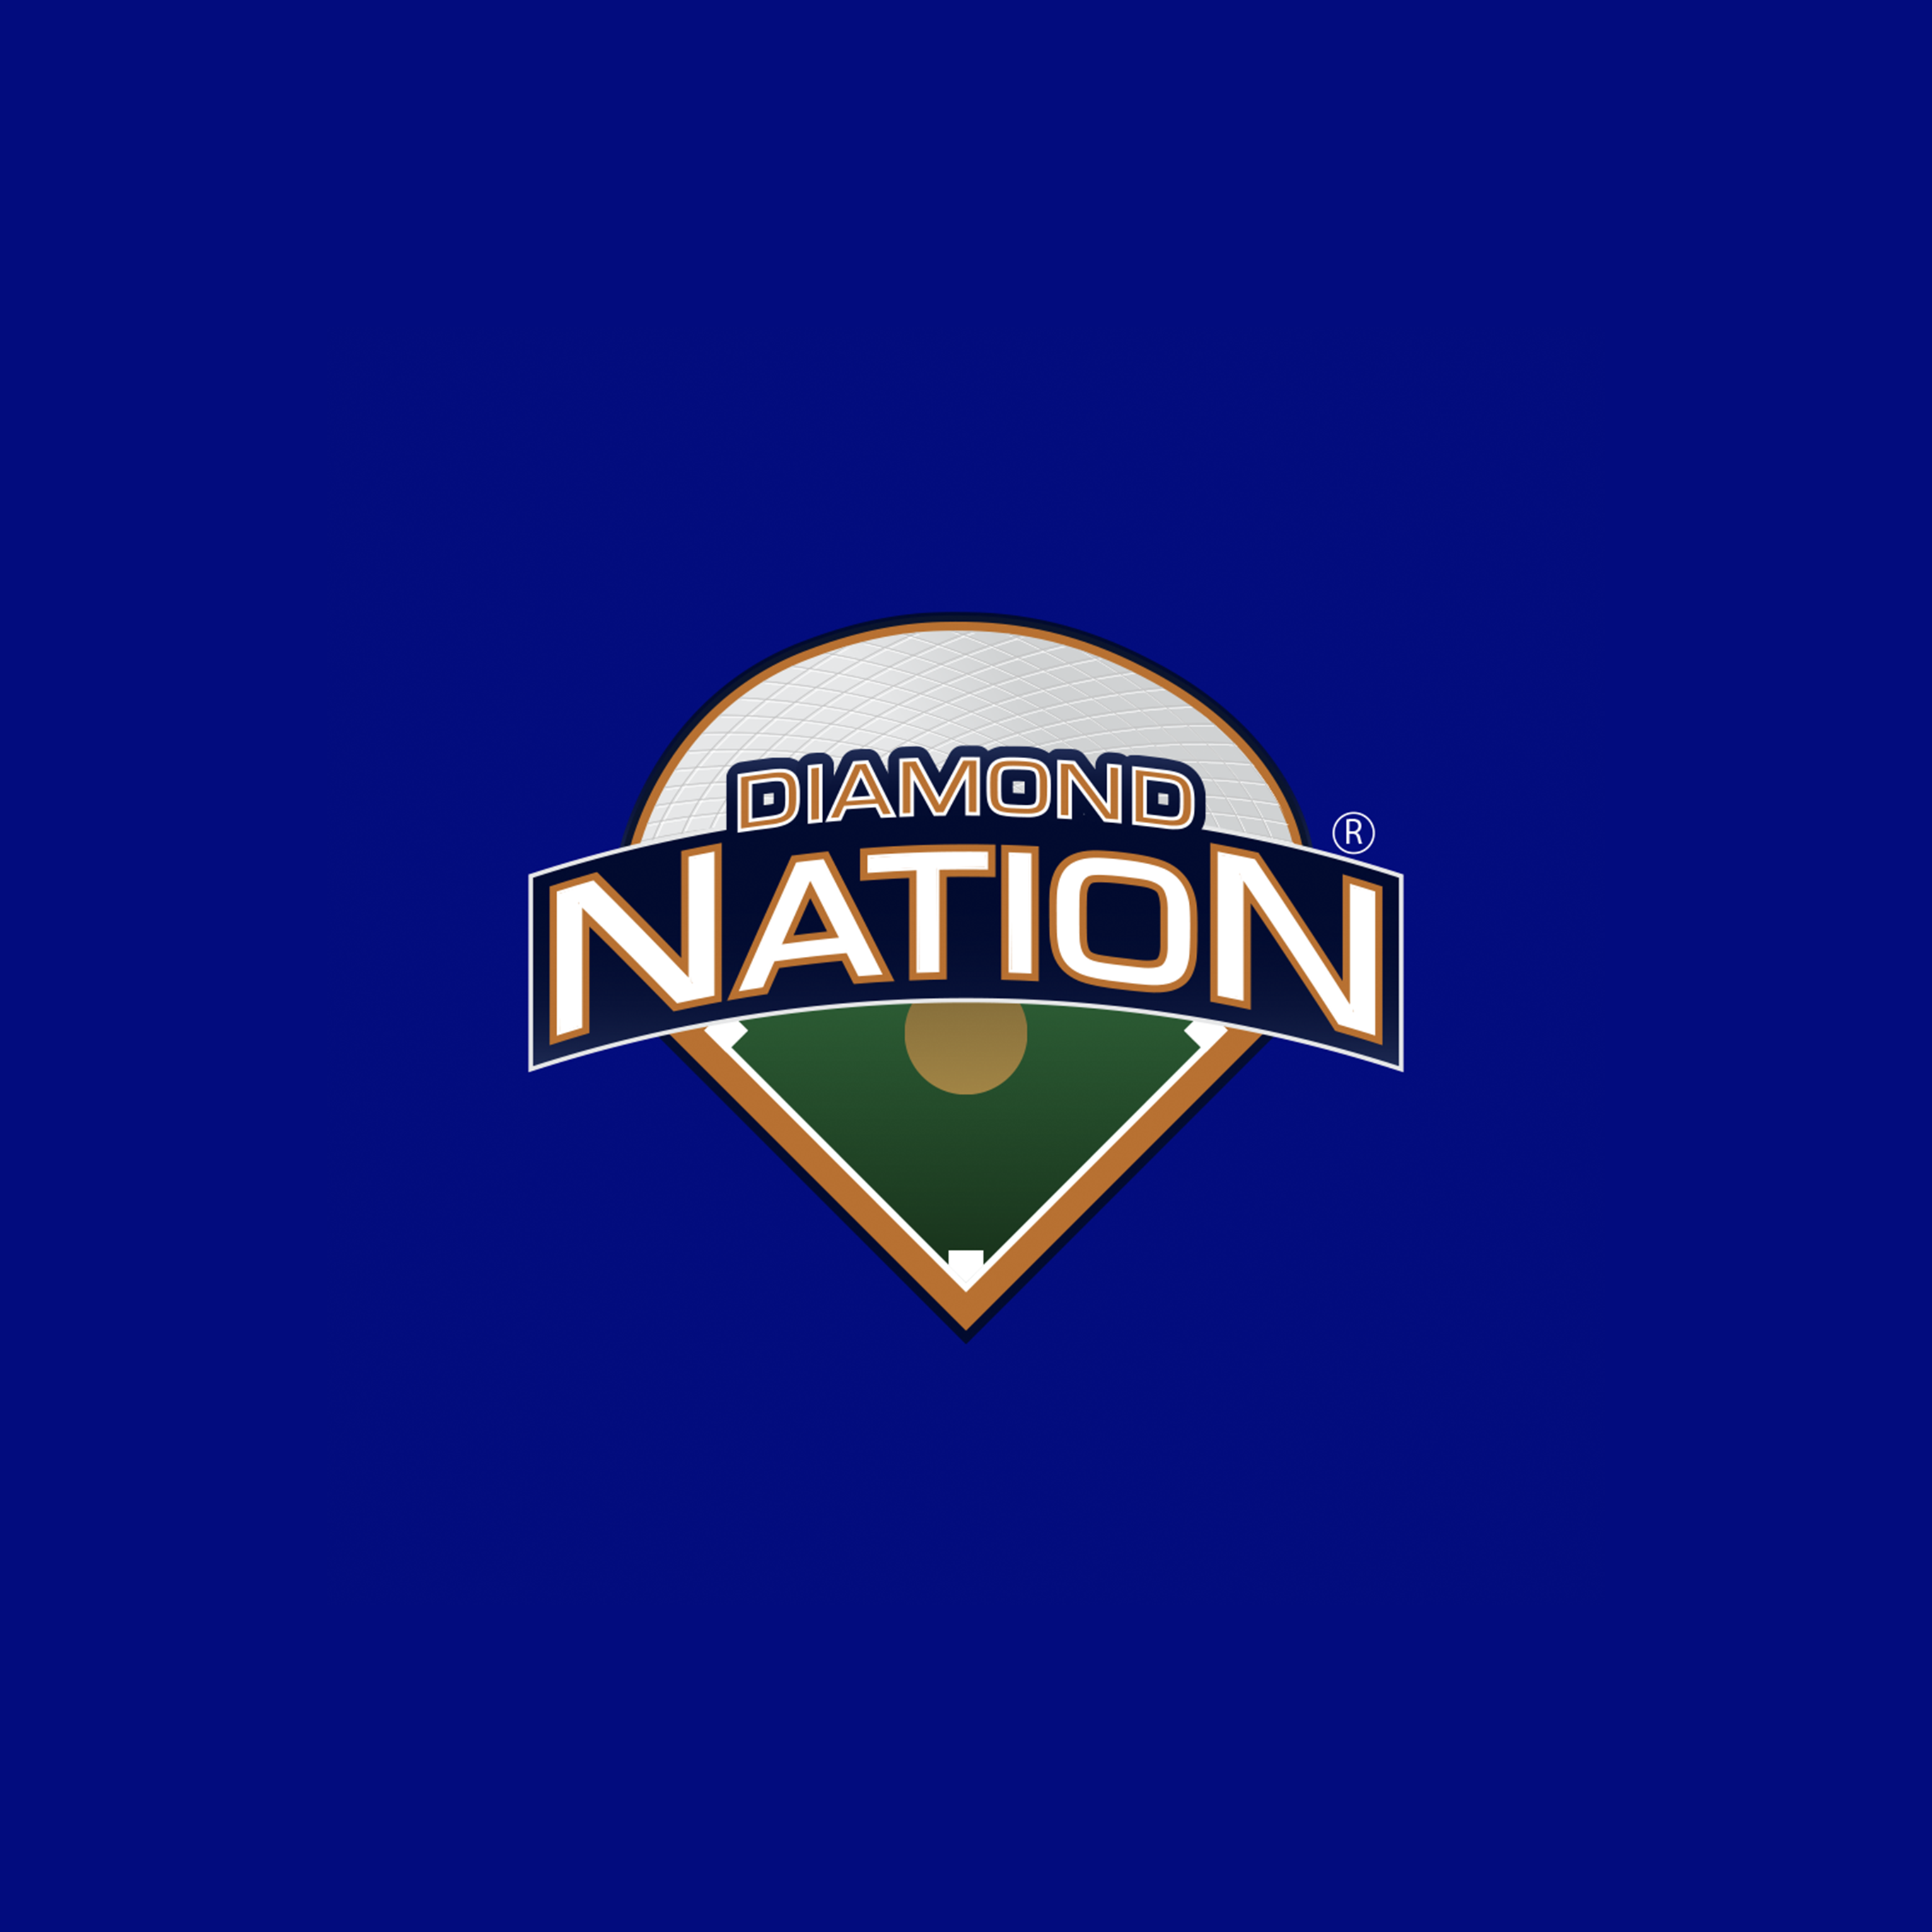 Android Diamond: Get The Diamond Nation Guide